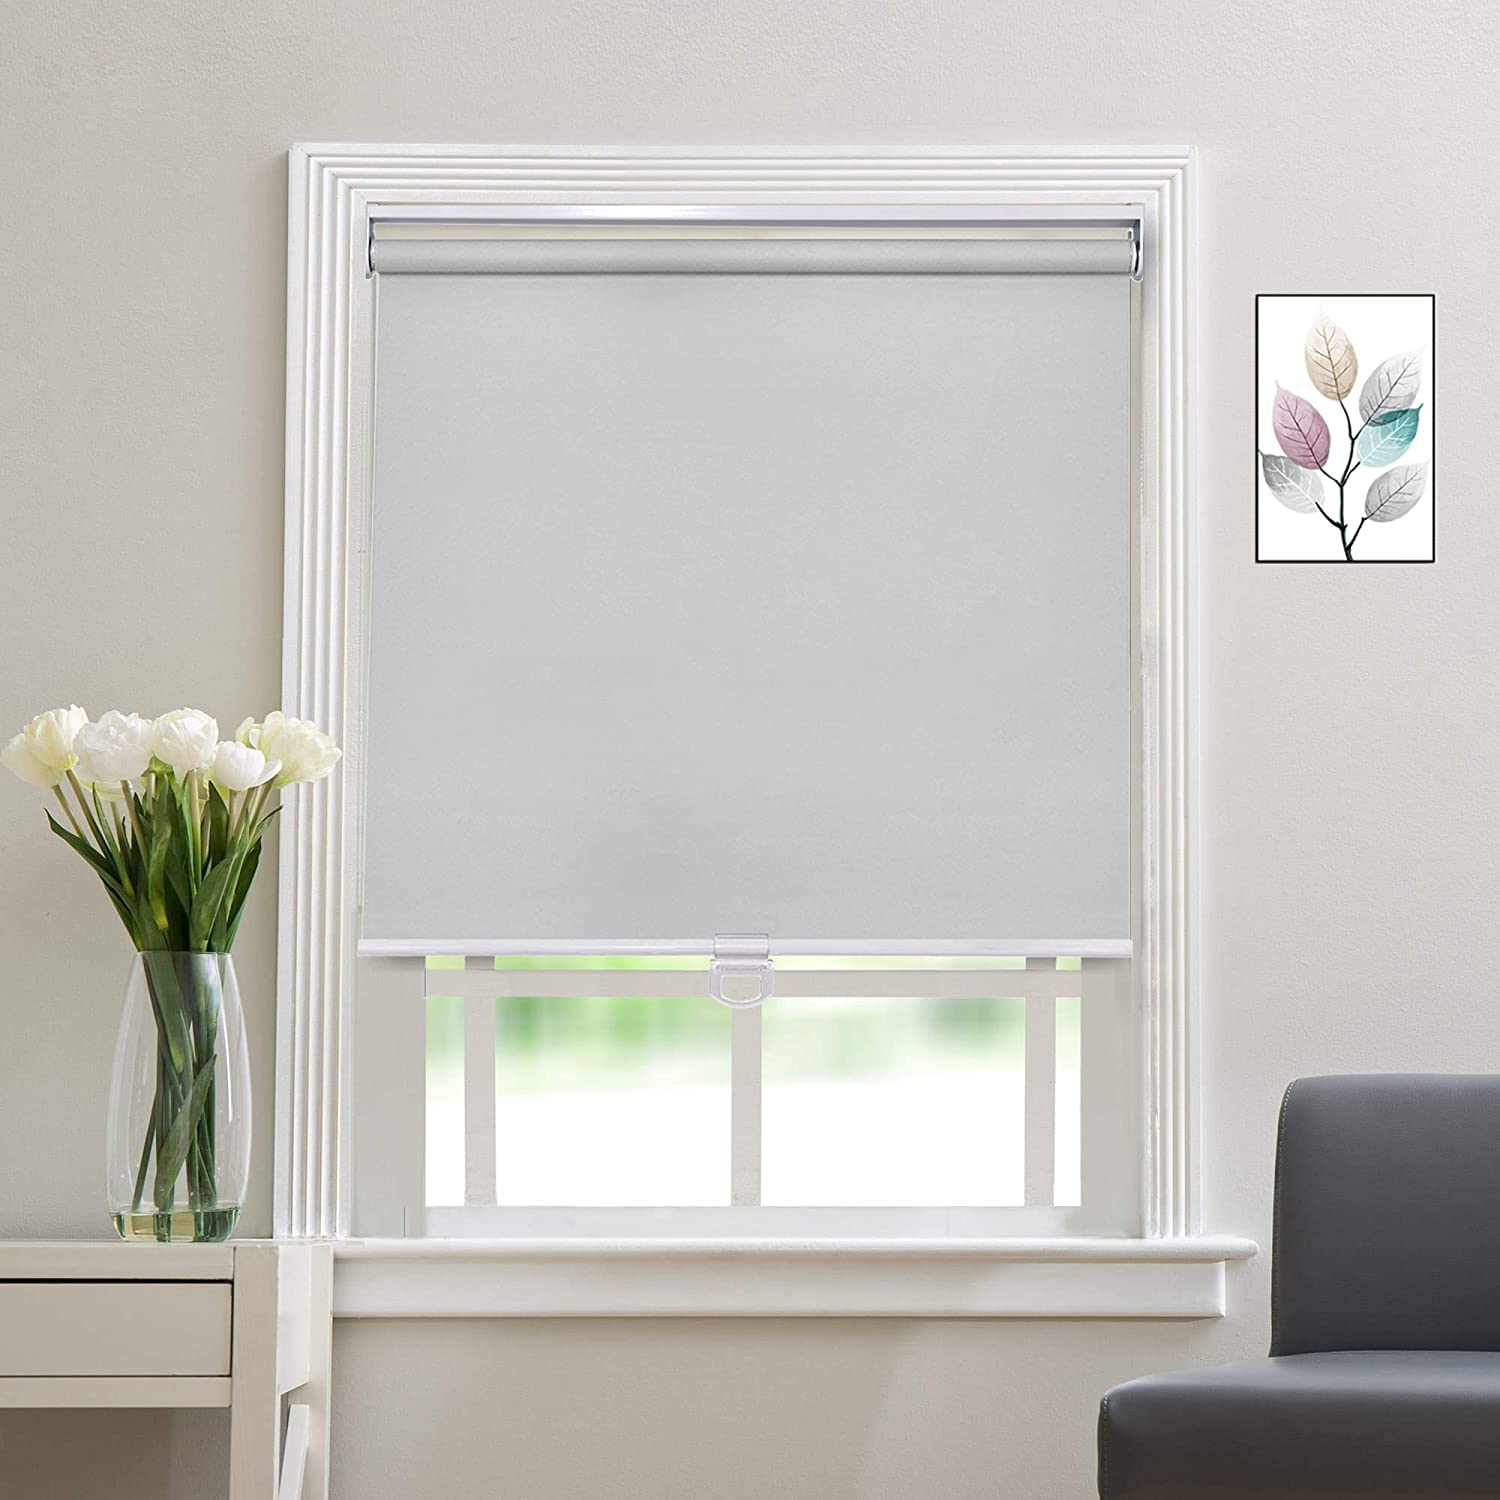 Blackout Cordless Roller Blinds and for - Shades Safety Windows Max 46% OFF Seattle Mall